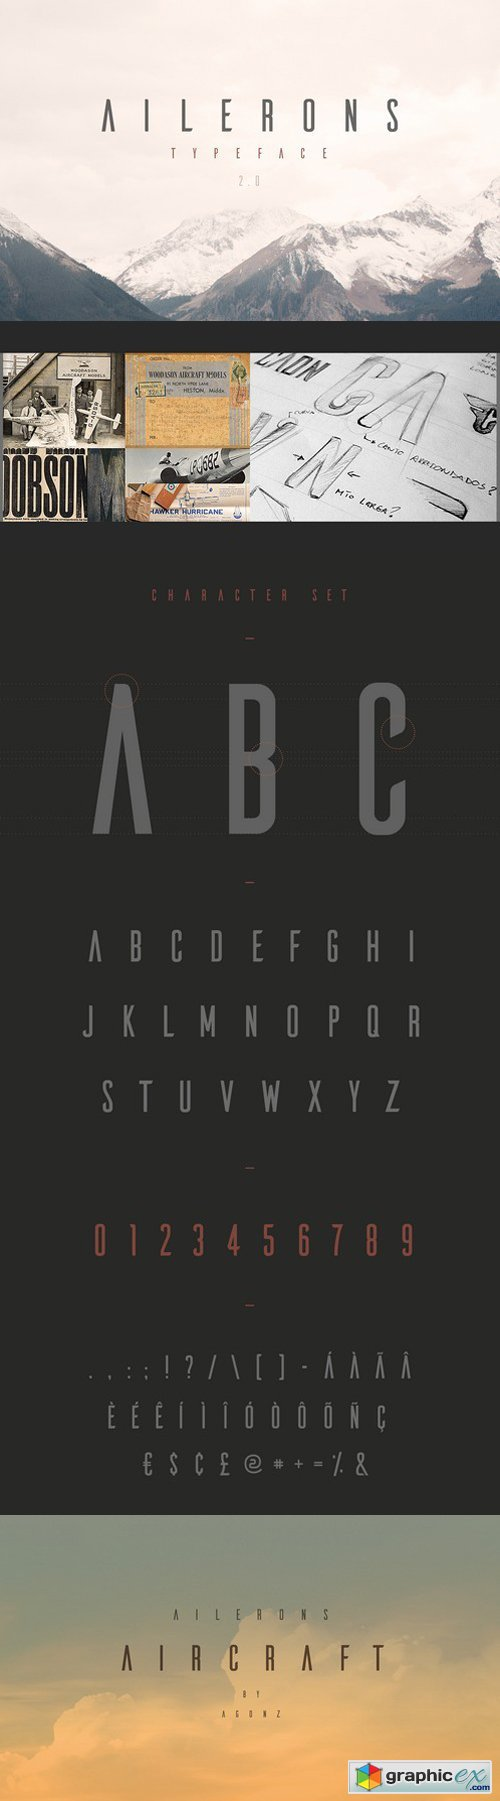 Ailerons Typeface V 2.0